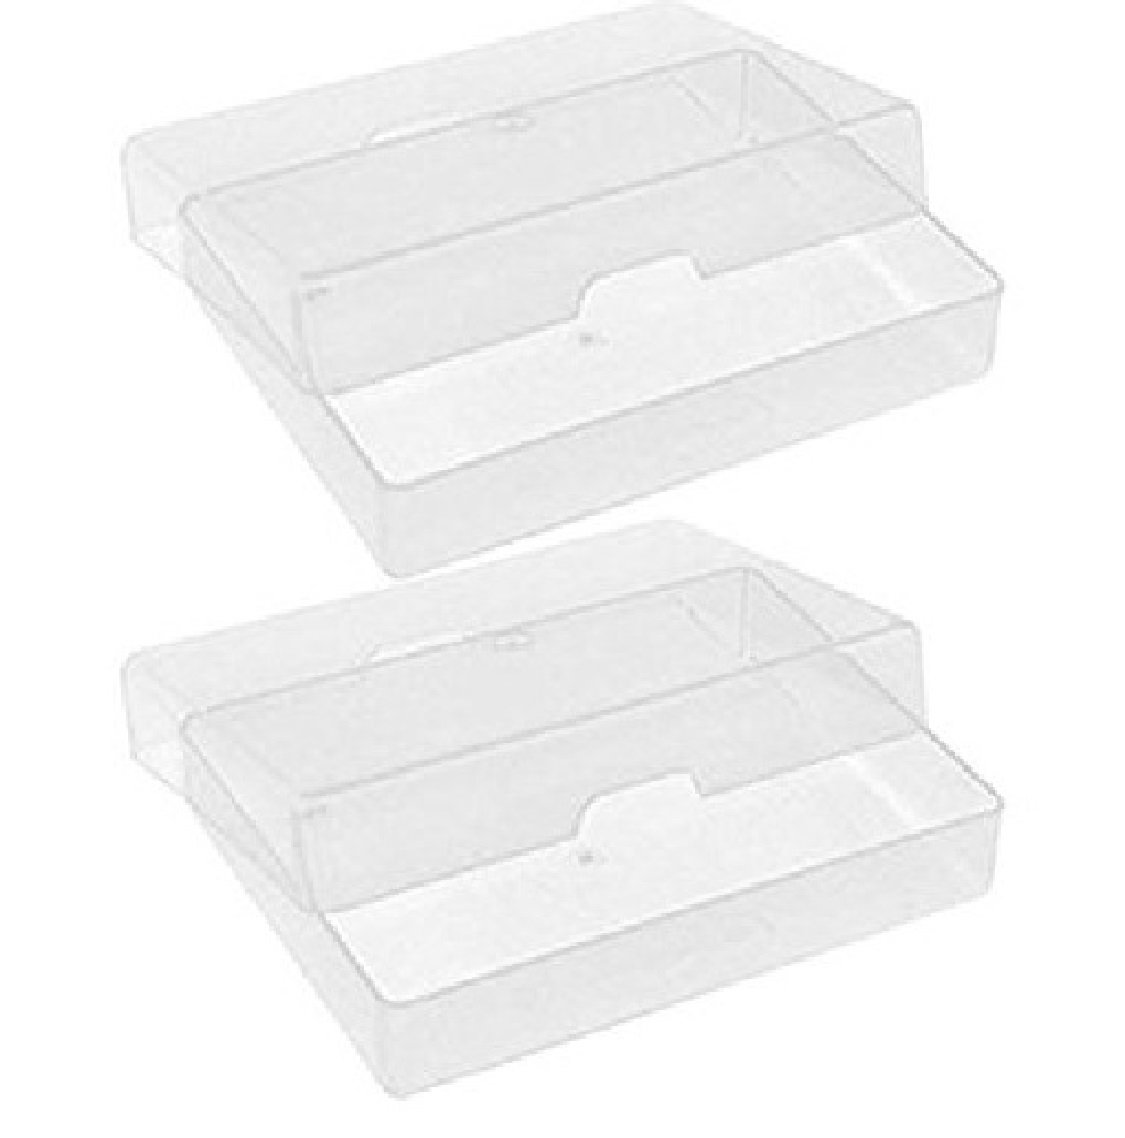 Business card plastic storage box image collections card design business cards plastic boxes choice image card design and card clear business card boxes plastic gallery colourmoves